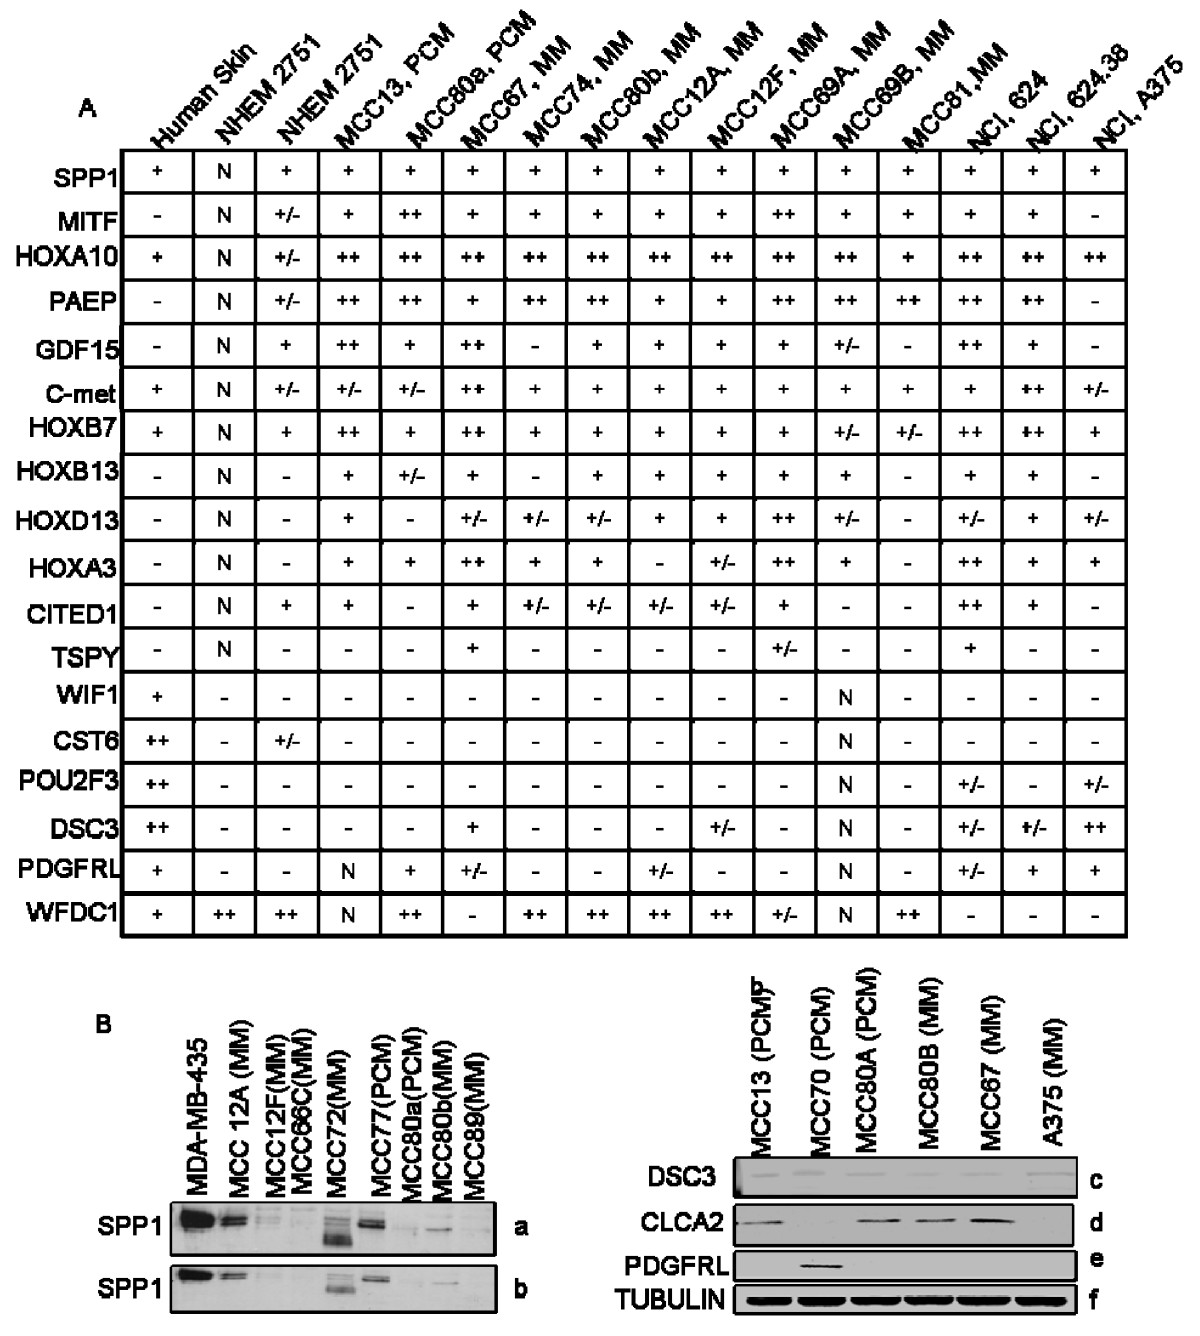 http://static-content.springer.com/image/art%3A10.1186%2F1755-8794-1-13/MediaObjects/12920_2007_Article_13_Fig3_HTML.jpg